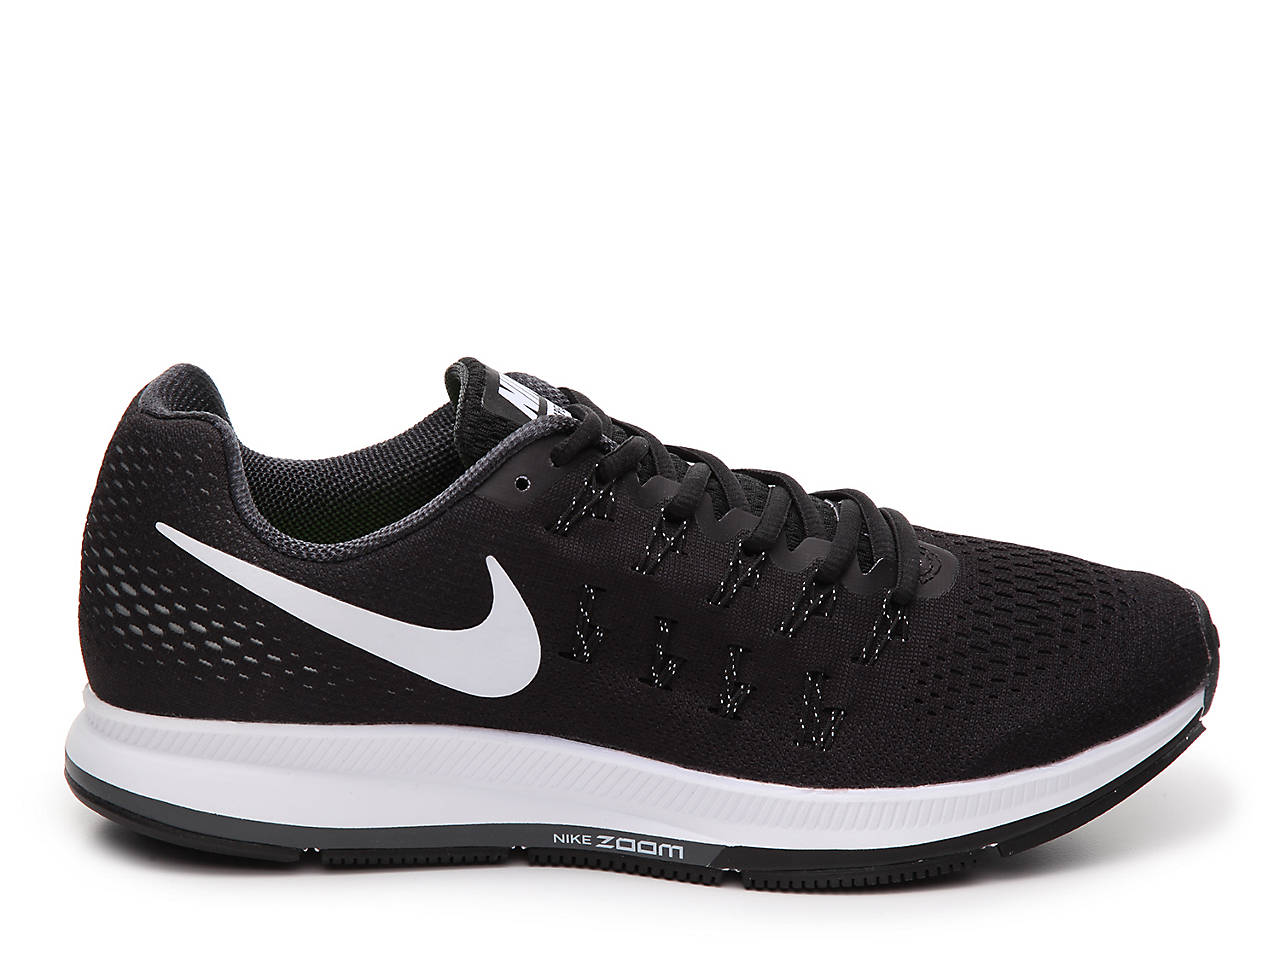 sports shoes 9c8d7 ae4f9 Air Zoom Pegasus 33 Lightweight Running Shoe - Men s. next